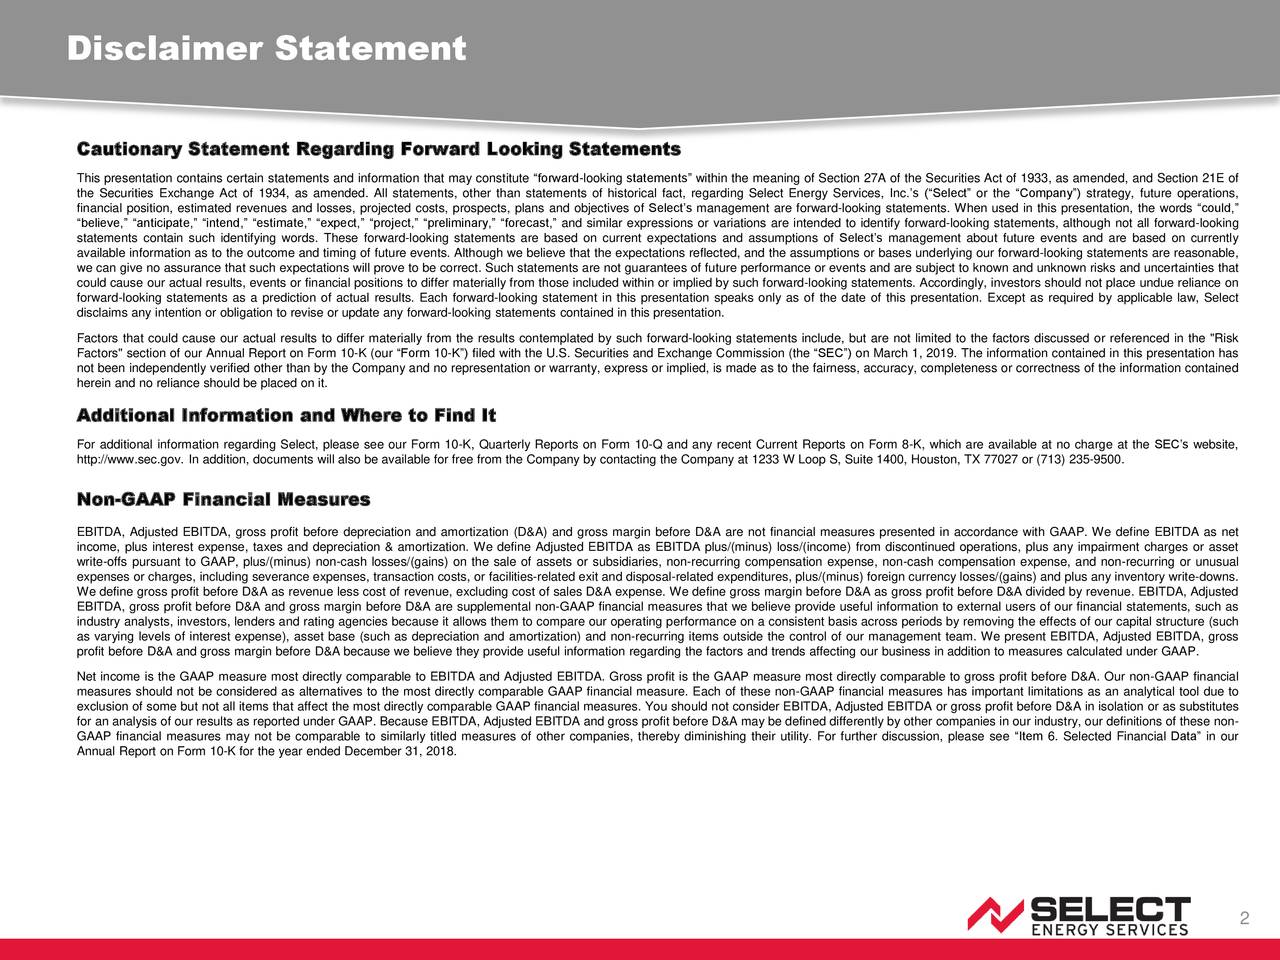 """Cautionary Statement Regarding Forward Looking Statements This presentation contains certain statements and information that may constitute """"forward-looking statements"""" within the meaning of Section 27A of the Securities Act of 1933, as amended, and Section 21E of the Securities Exchange Act of 1934, as amended. All statements, other than statements of historical fact, regarding Select Energy Services, Inc.'s (""""Select"""" or the """"Company"""") strategy, future operations, financial position, estimated revenues and losses, projected costs, prospects, plans and objectives of Select's management are forward-looking statements. When used in this presentation, the words """"could,"""" """"believe,"""" """"anticipate,"""" """"intend,"""" """"estimate,"""" """"expect,"""" """"project,"""" """"preliminary,"""" """"forecast,"""" and similar expressions or variations are intended to identify forward-looking statements, although not all forward-looking statements contain such identifying words. These forward-looking statements are based on current expectations and assumptions of Select's management about future events and are based on currently available information as to the outcome and timing of future events. Although we believe that the expectations reflected, and the assumptions or bases underlying our forward-looking statements are reasonable, we can give no assurance that such expectations will prove to be correct. Such statements are not guarantees of future performance or events and are subject to known and unknown risks and uncertainties that could cause our actual results, events or financial positions to differ materially from those included within or implied by such forward-looking statements. Accordingly, investors should not place undue reliance on forward-looking statements as a prediction of actual results. Each forward-looking statement in this presentation speaks only as of the date of this presentation. Except as required by applicable law, Select disclaims any intention or obligation to revise or update any forward-"""